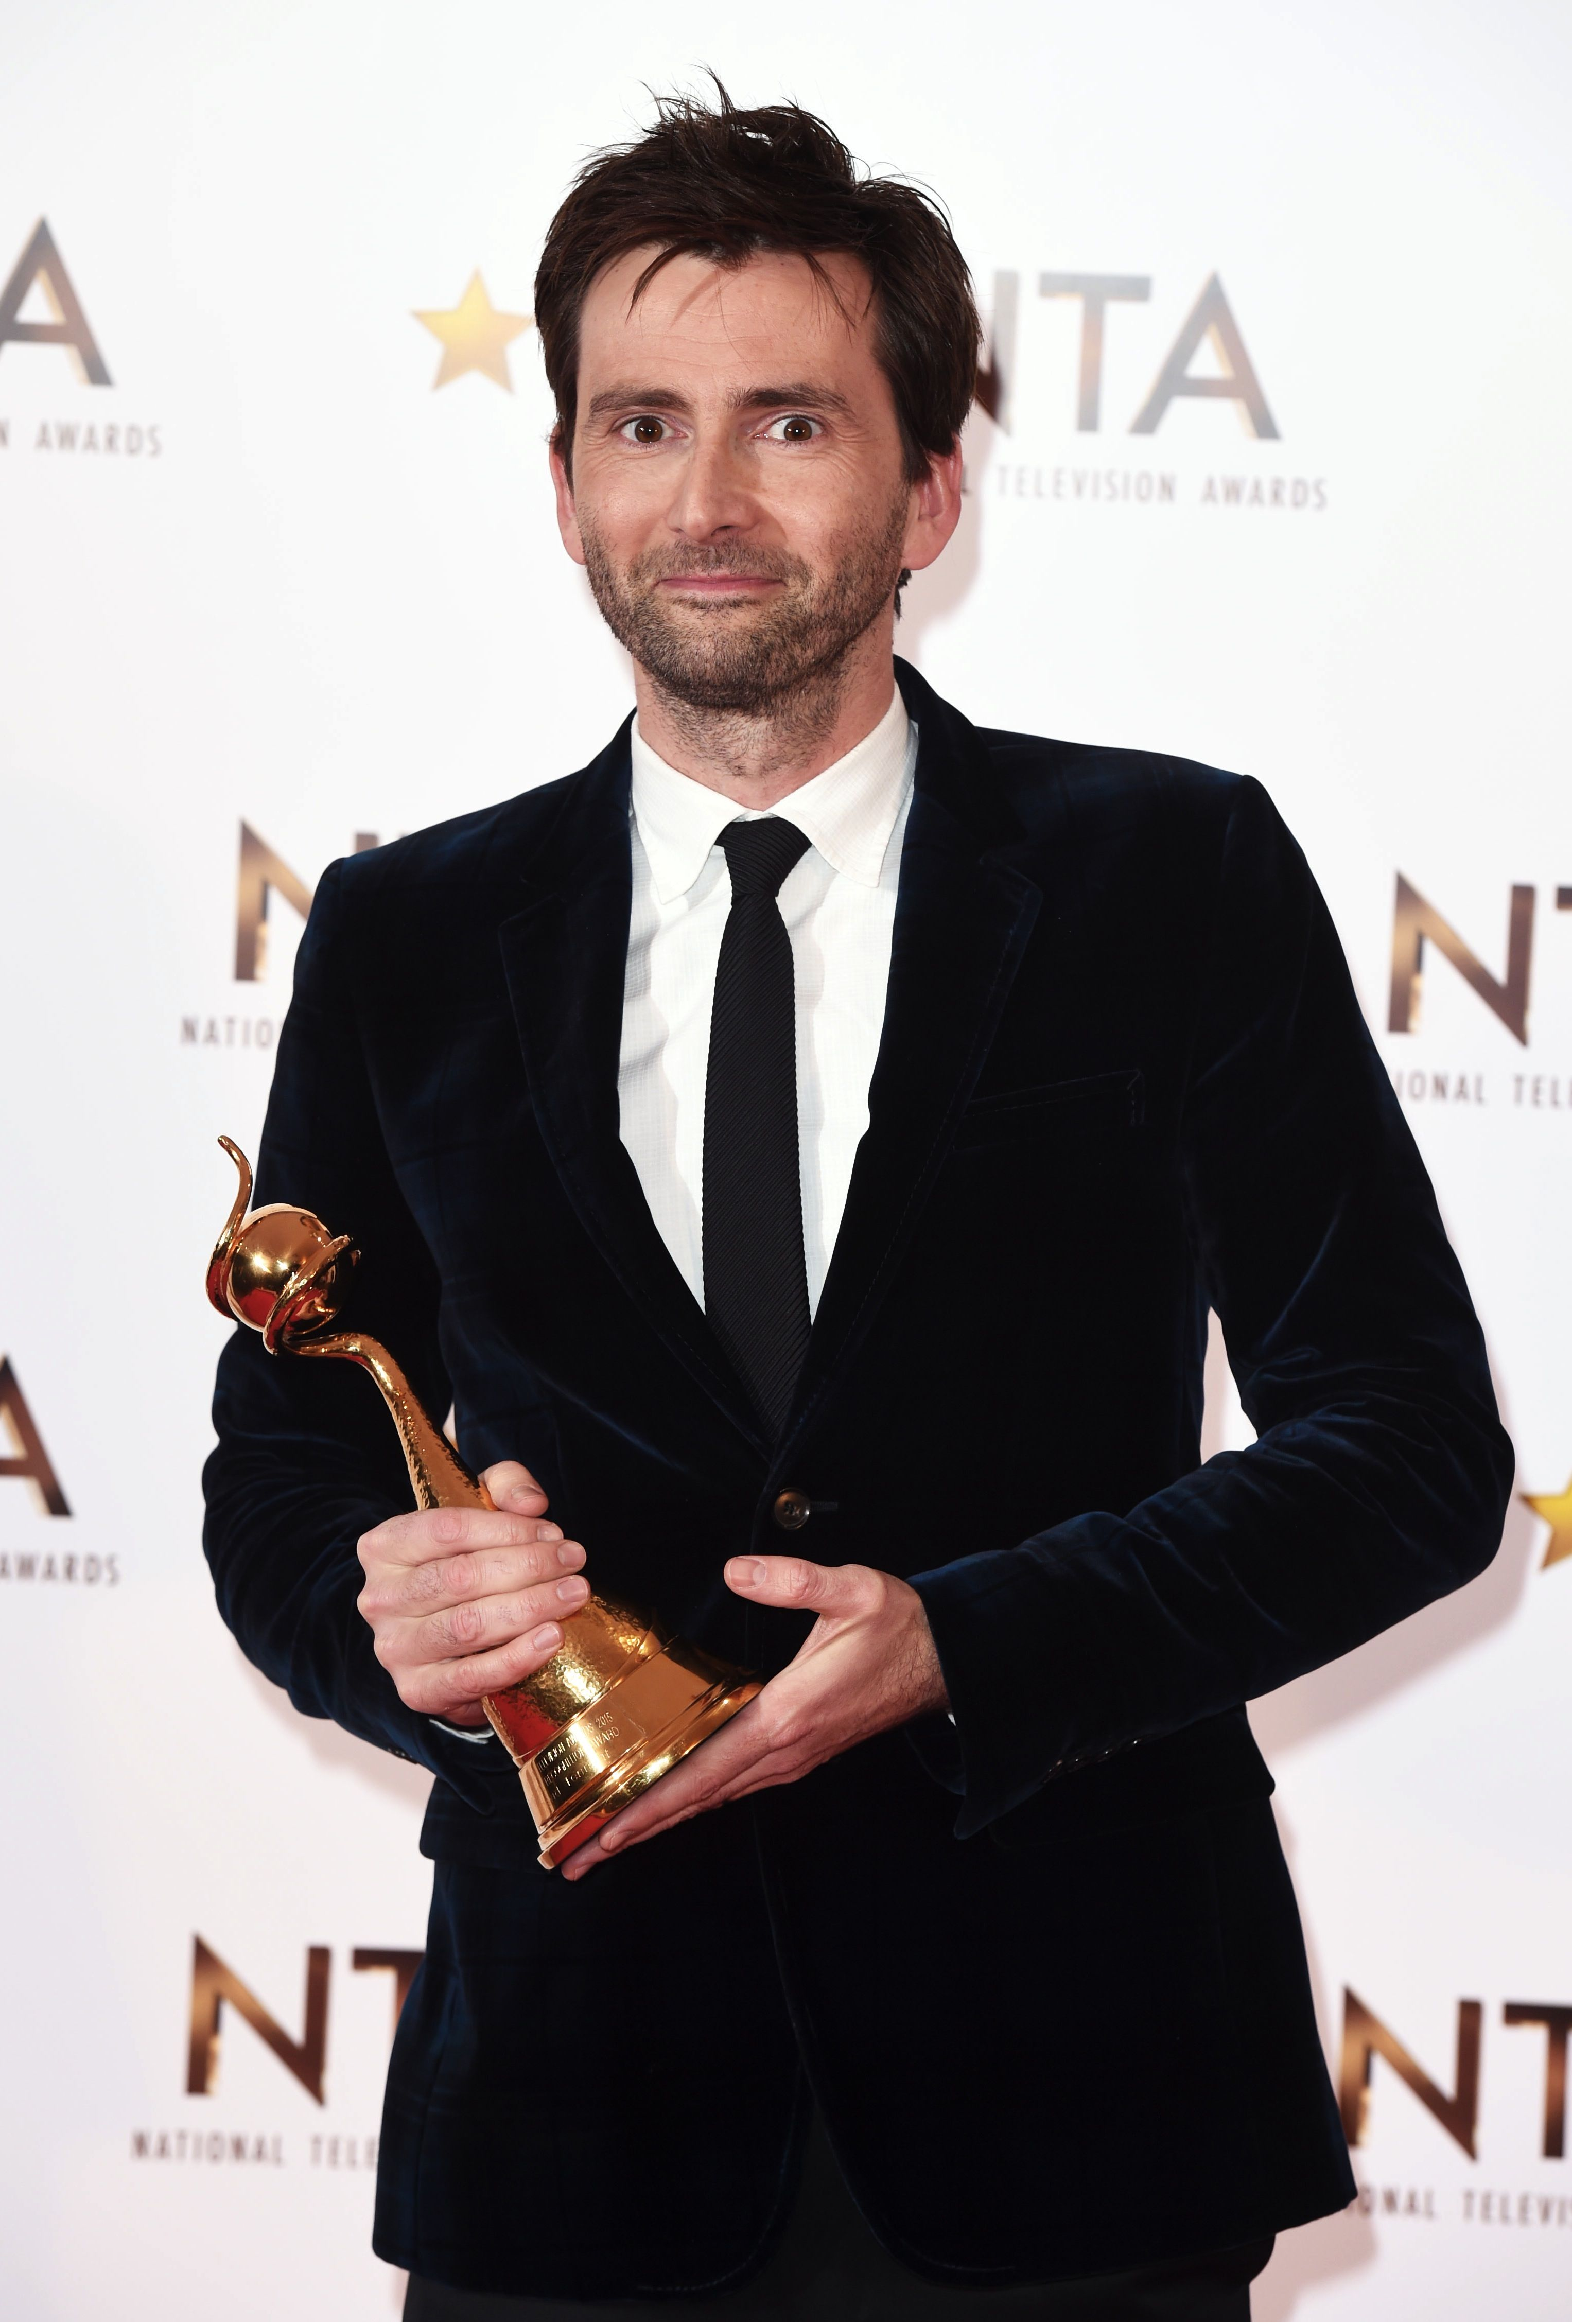 VIDEO: David Tennant Talks Hannibal, Doctor Who & Broadchurch to Digital Spy at 2015 NTA's | <--- HE WANTS TO BE IN HANNIBAL!! OMG, I SO SUPPORT THIS! BRIAN FULLER! MAKE THIS HAPPEN!